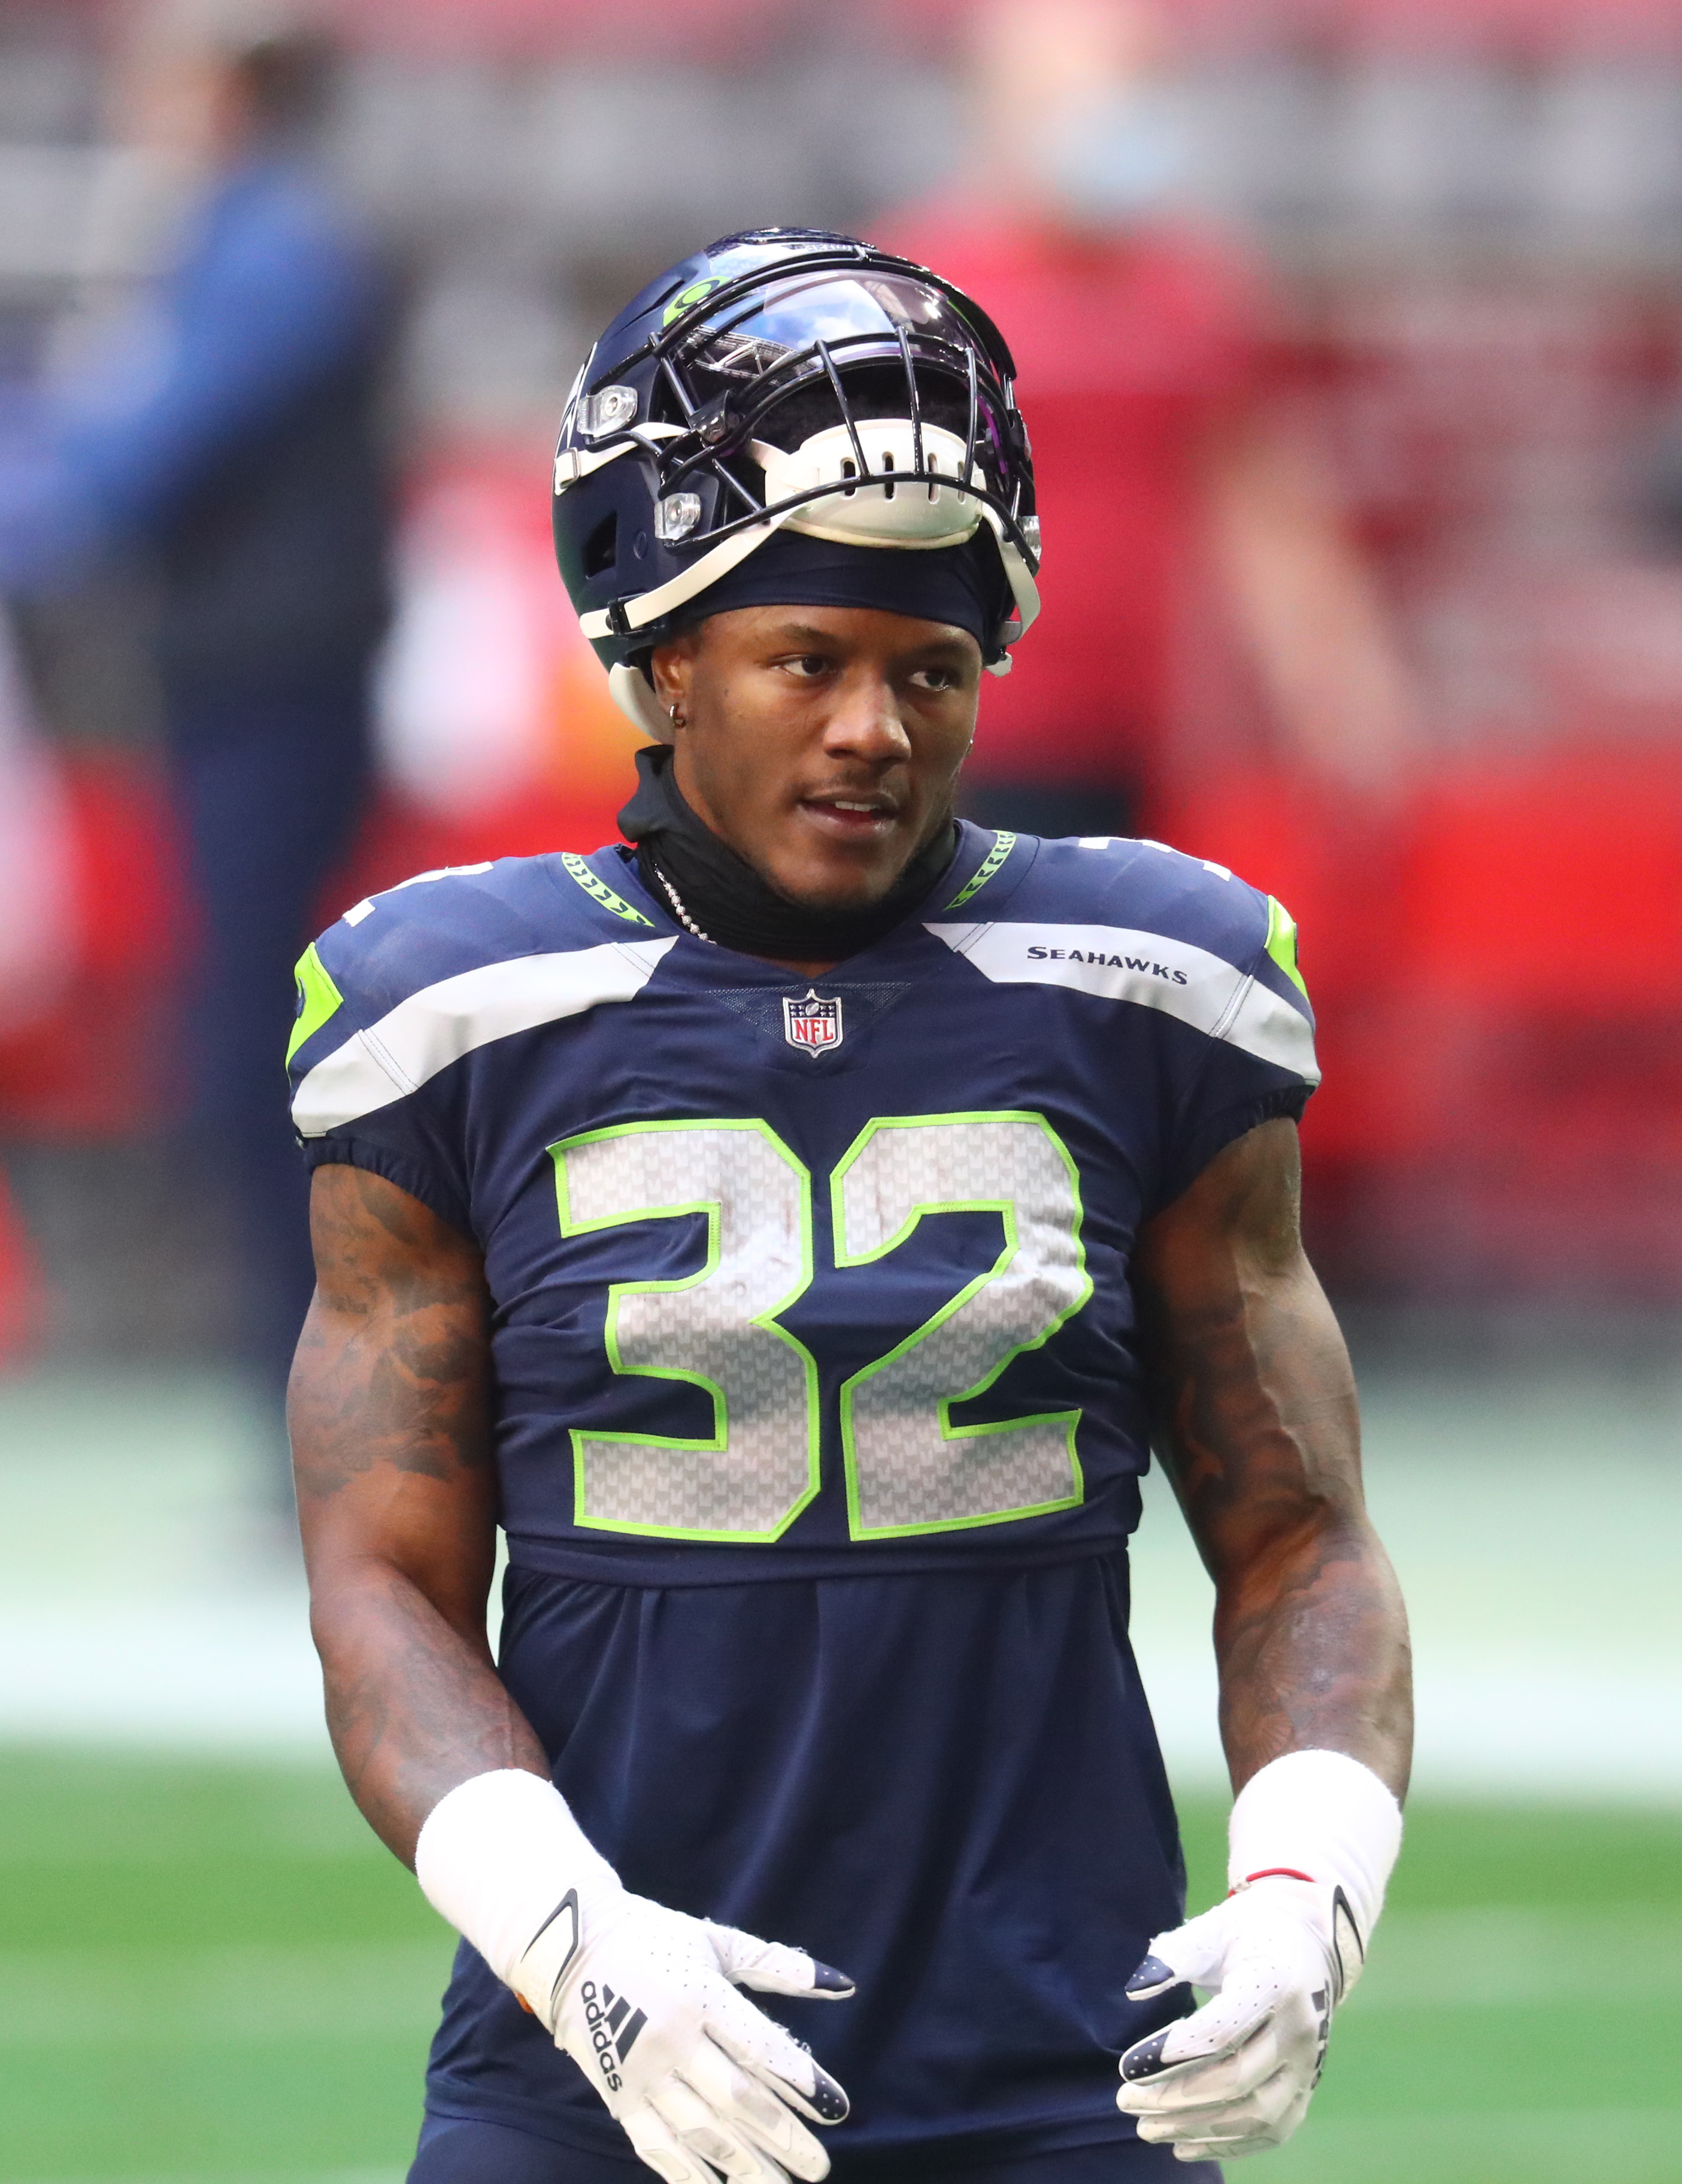 Seattle Seahawks running back Chris Carson (32) against the San Francisco 49ers at State Farm Stadium.